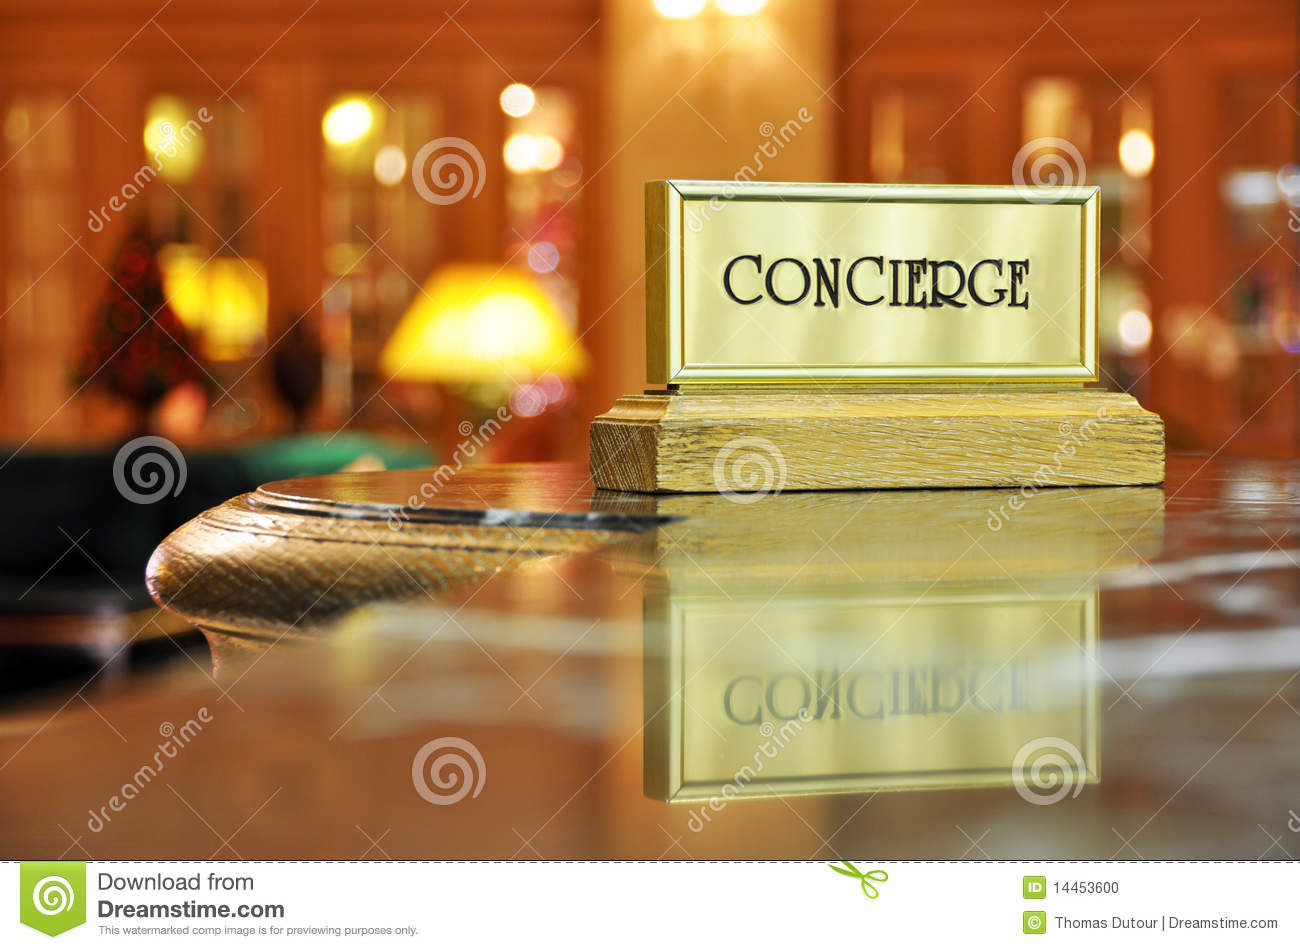 Concierge Desk Stock Photo Image Of Journey Consulting